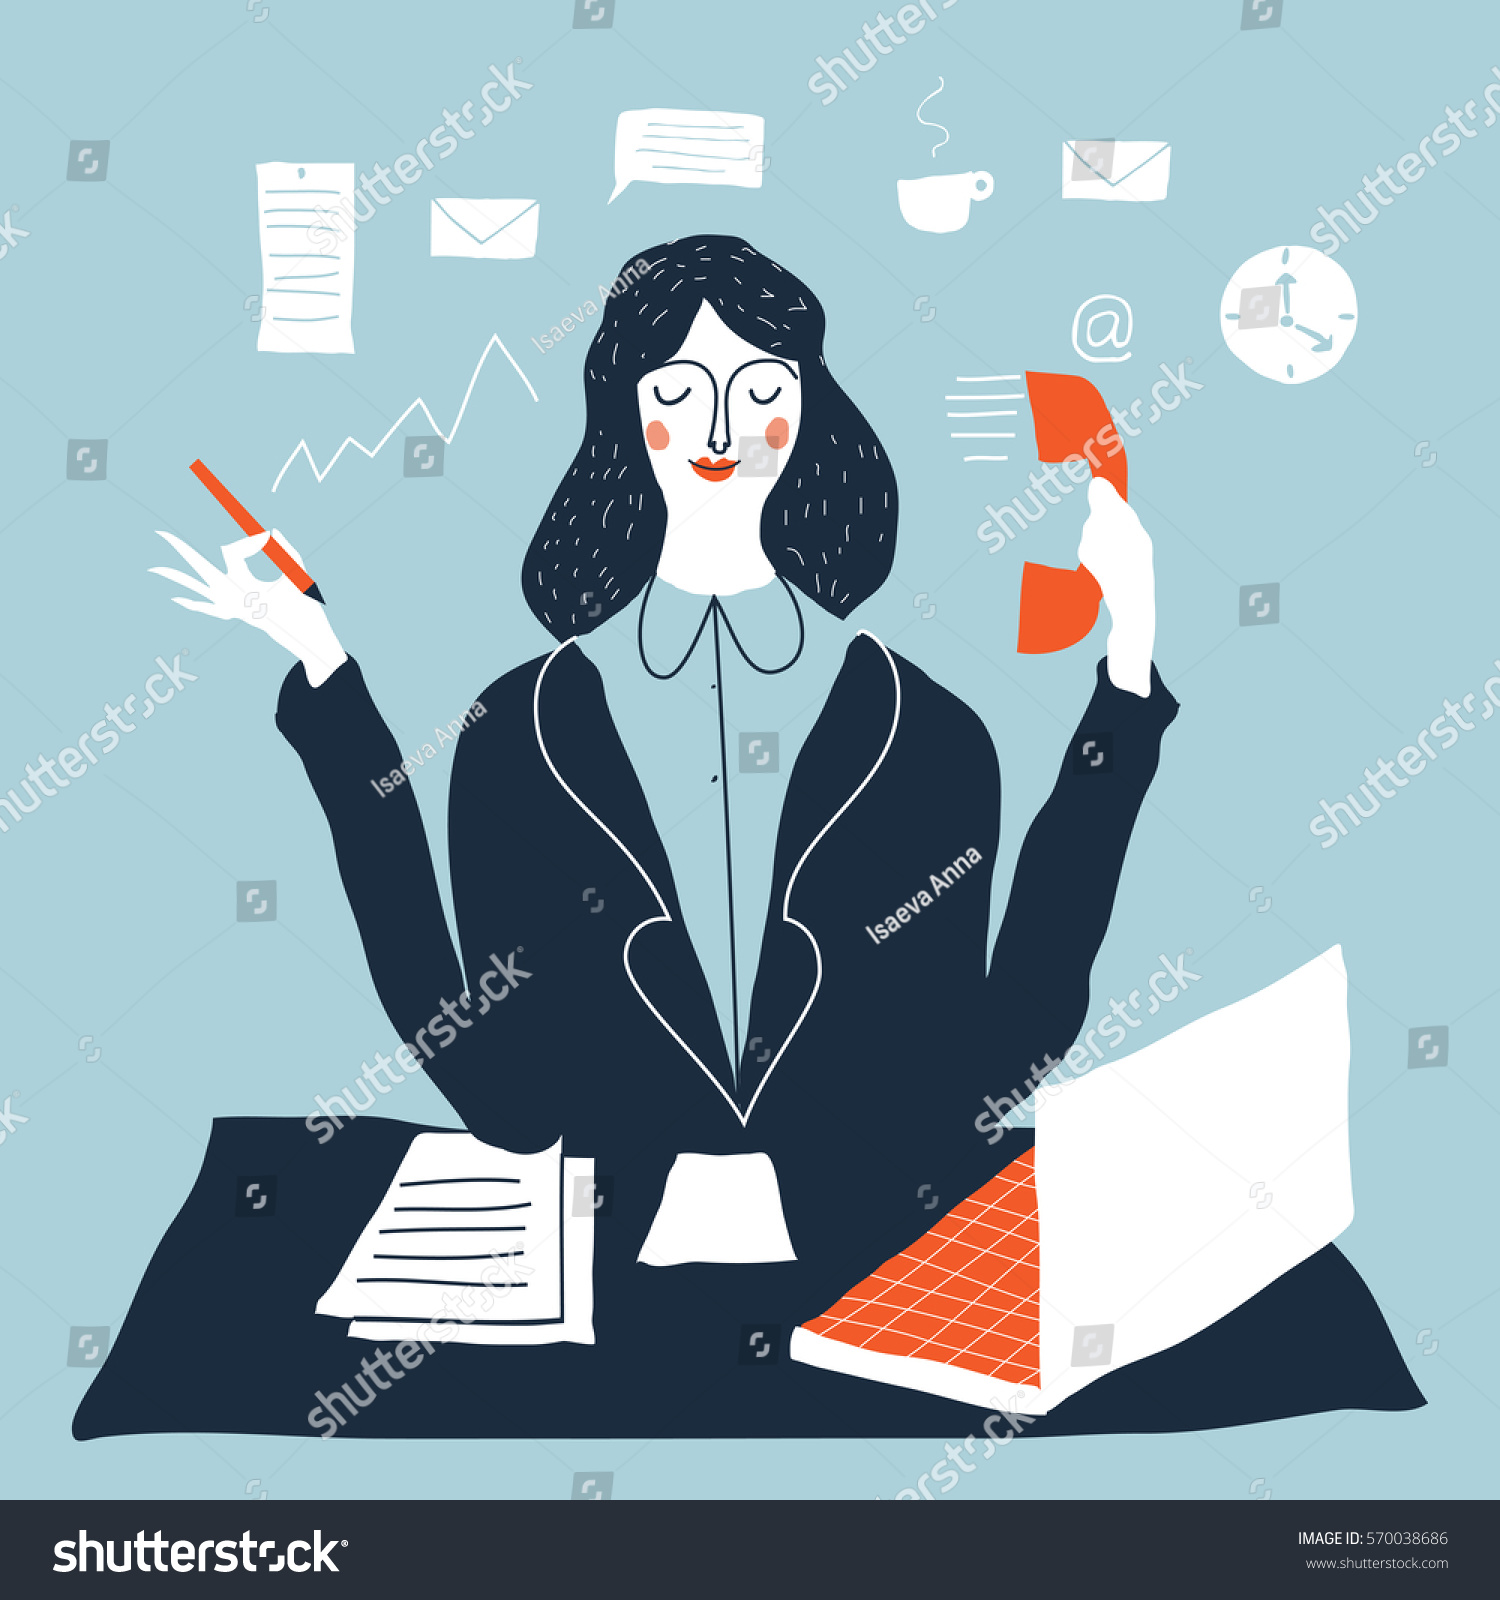 financial accountants in modern era Introduction to accounting accounting is a profession used to make financial and business decisions billions of dollars exchange hands every day, in millions of separate business.